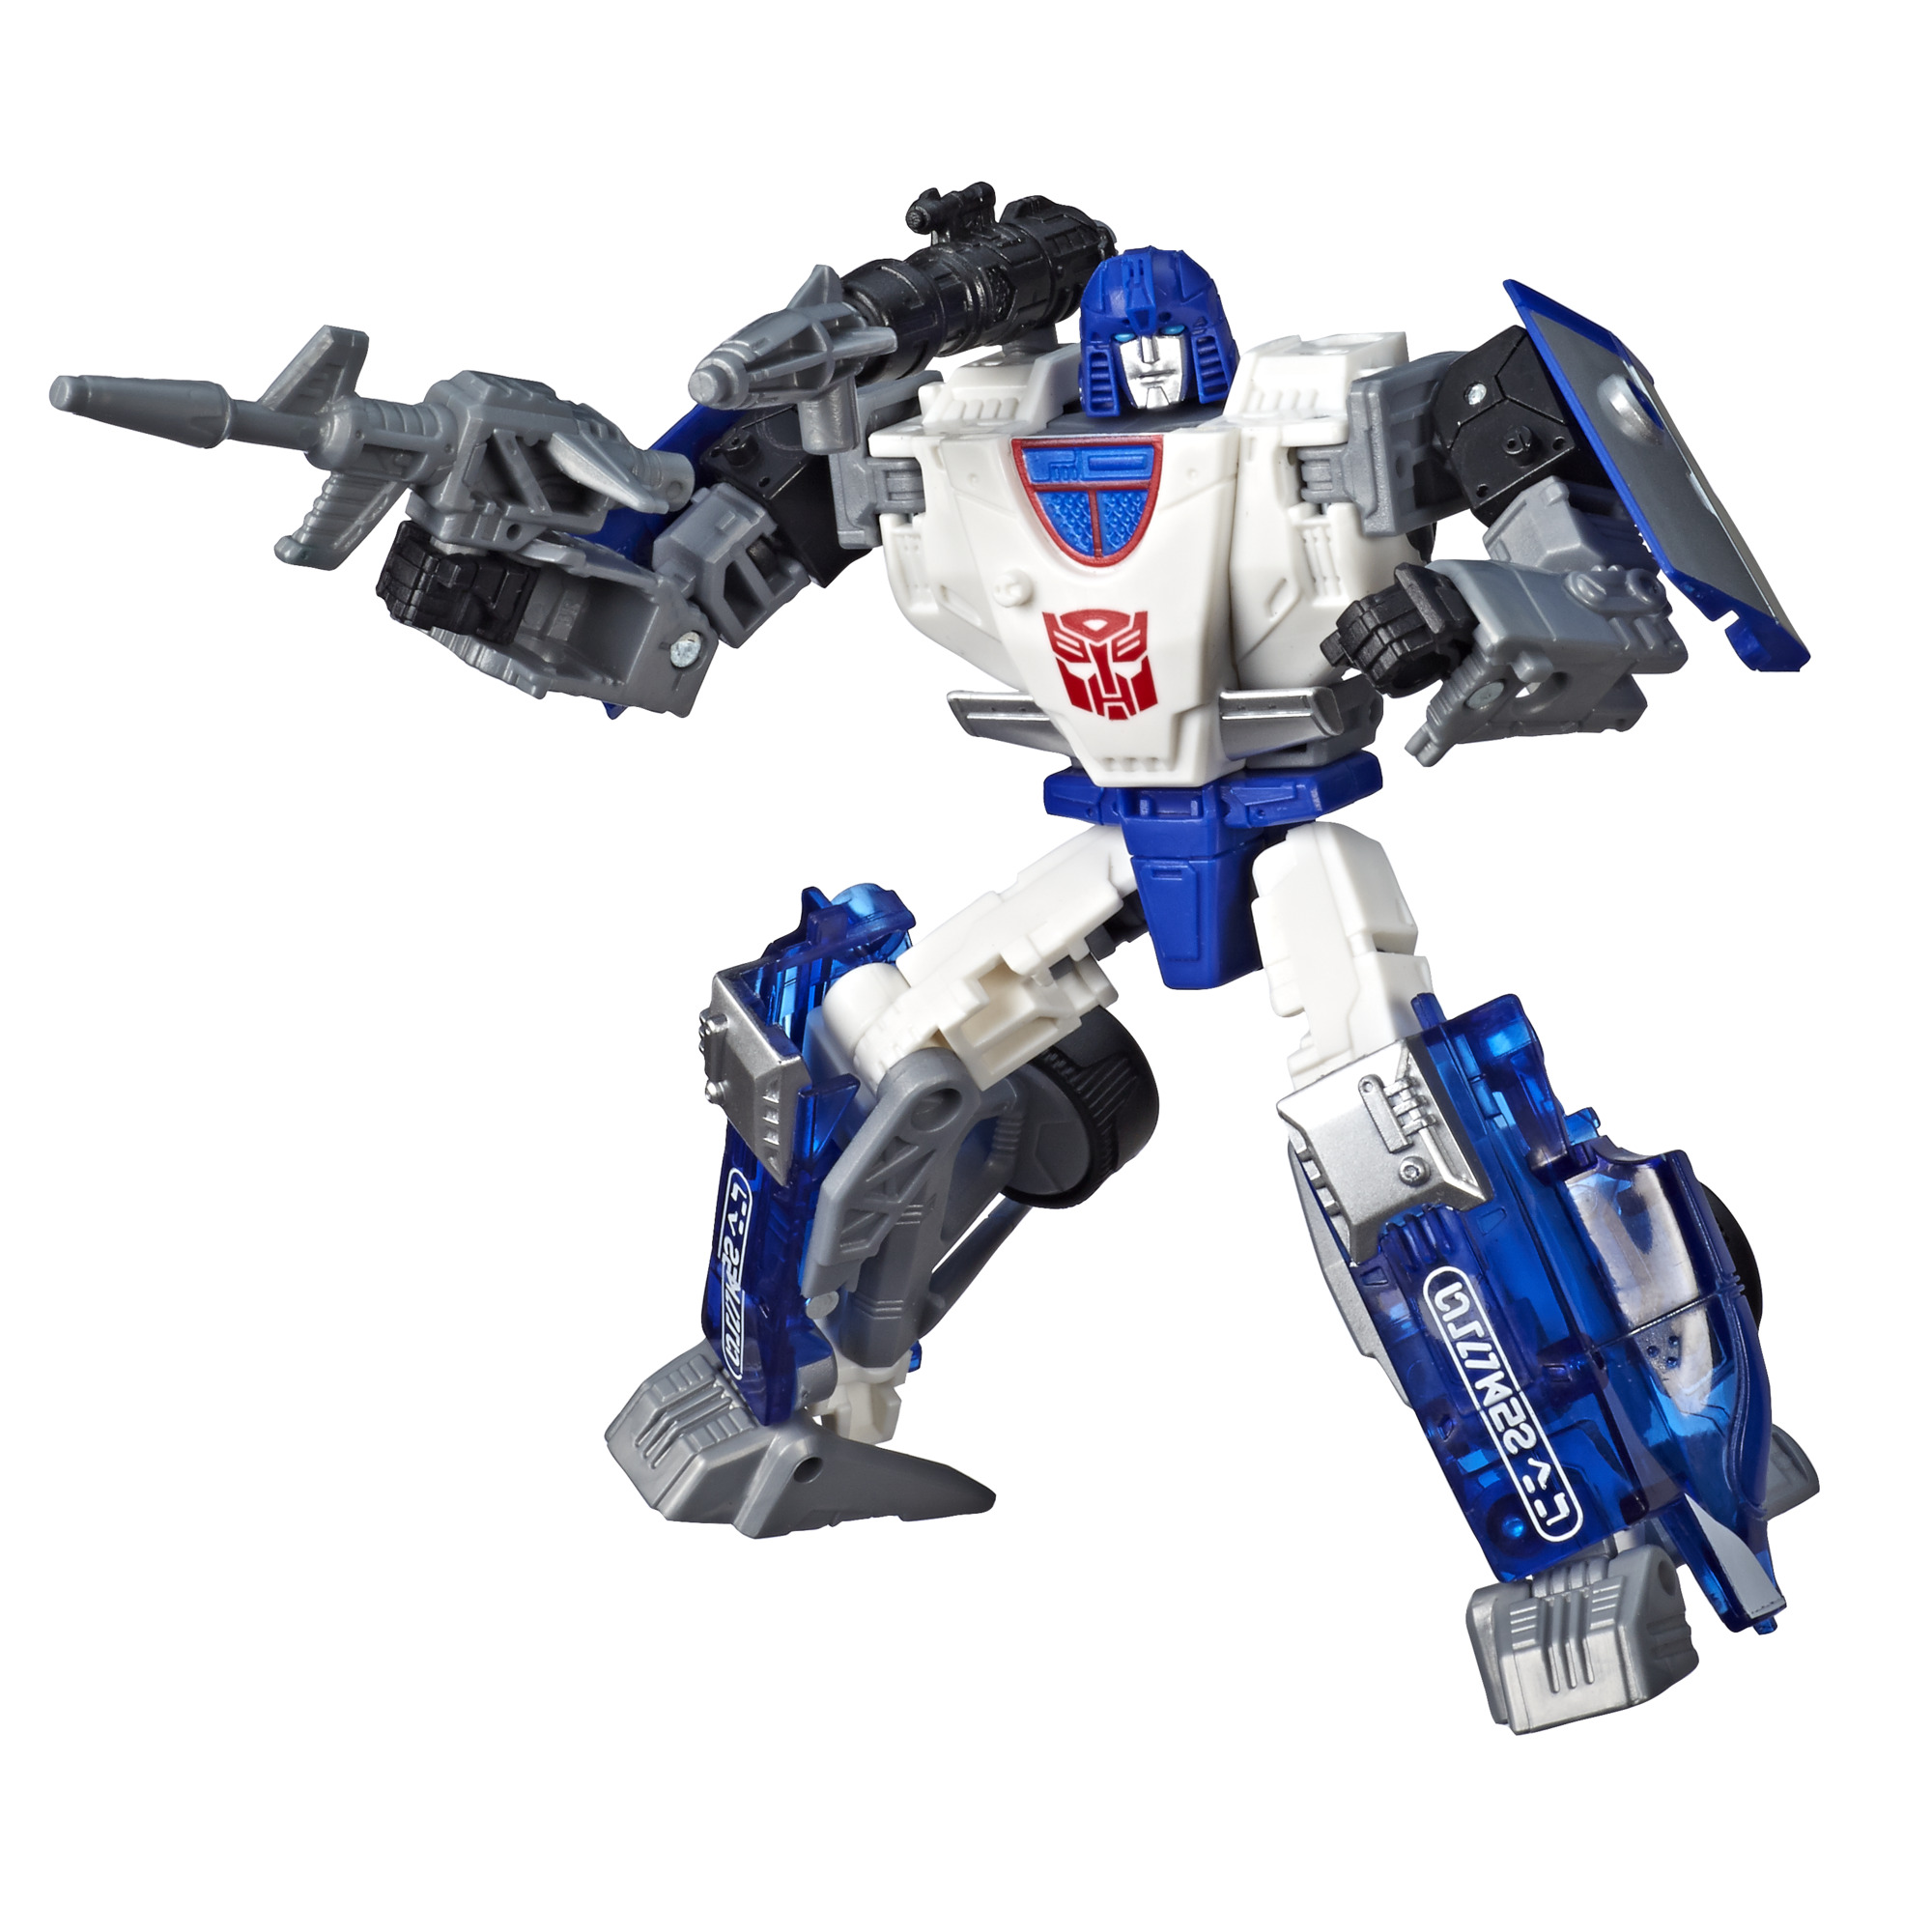 Transformers War for Cybertron Deluxe WFC-S43 Autobot Mirage - Siege Chapter